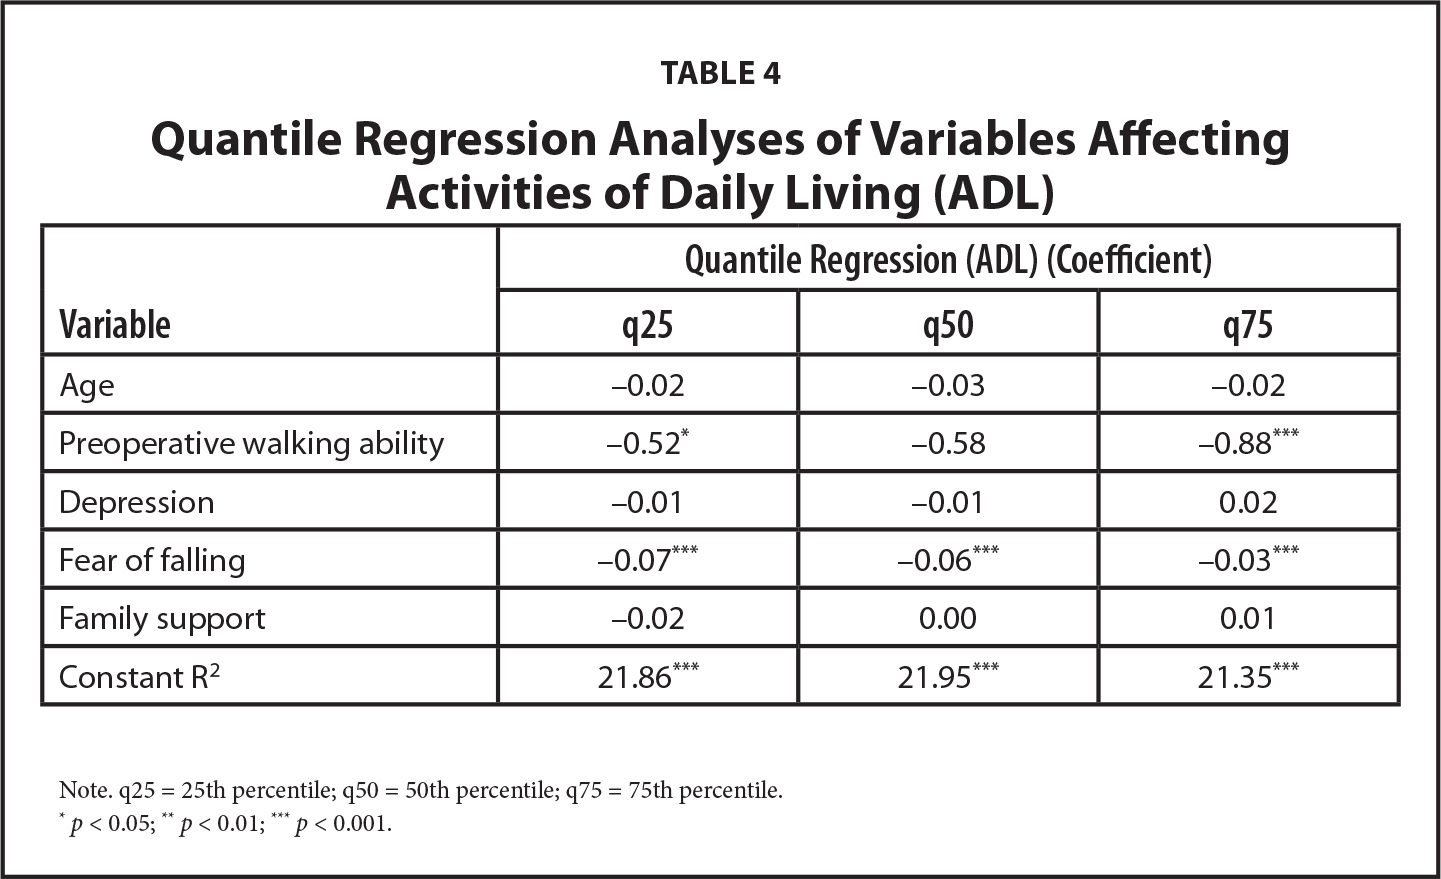 Quantile Regression Analyses of Variables Affecting Activities of Daily Living (ADL)